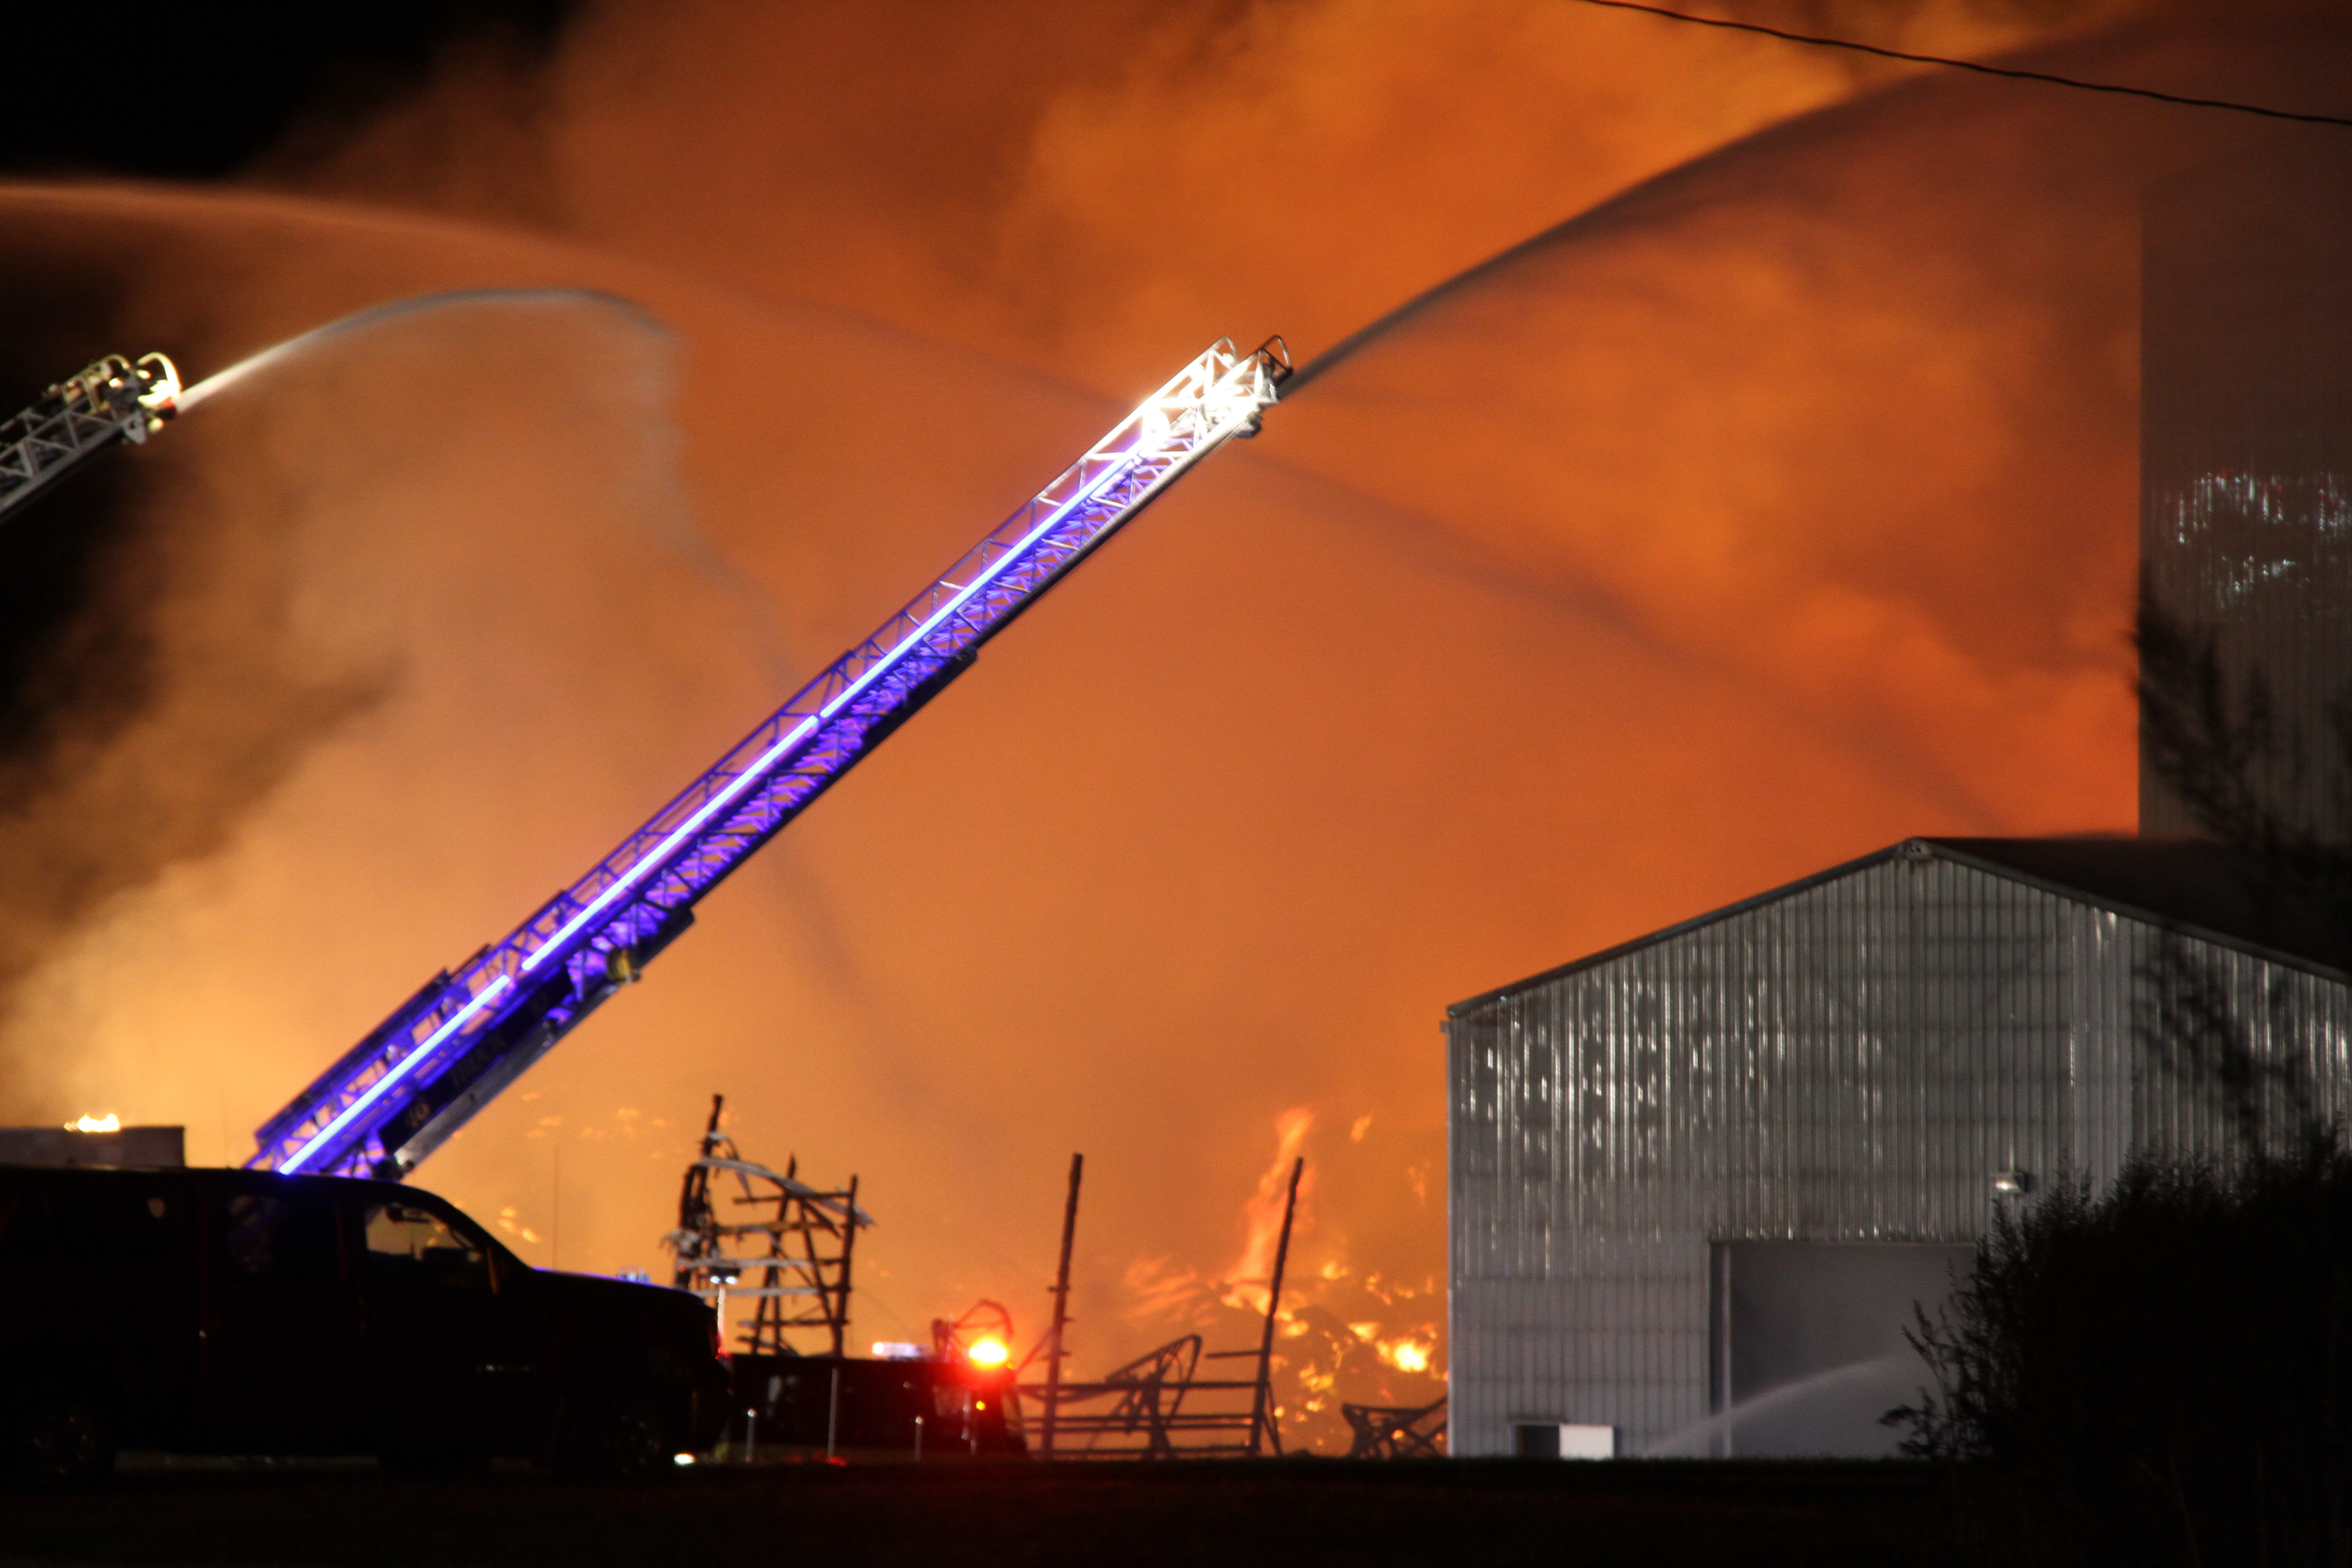 UPDATE: Caledonia Fertilizer Plant a Total Loss After Fire